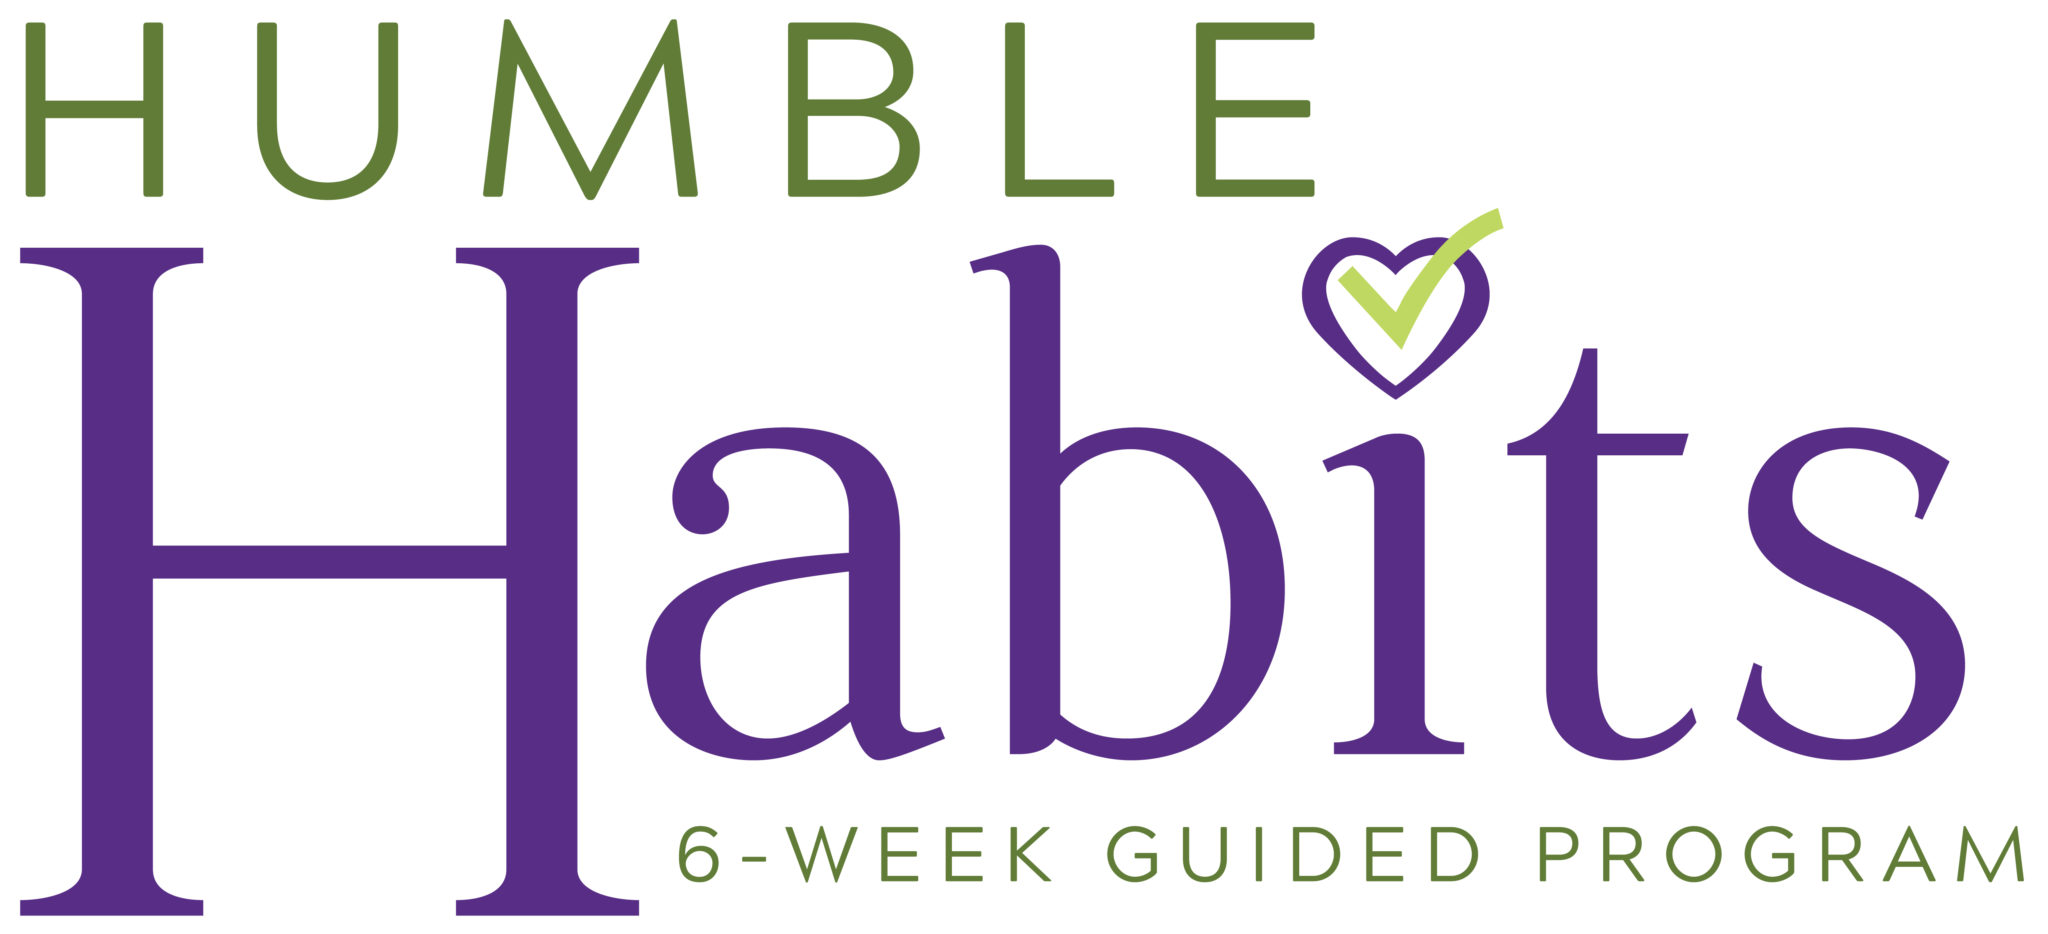 Humble Habits course image